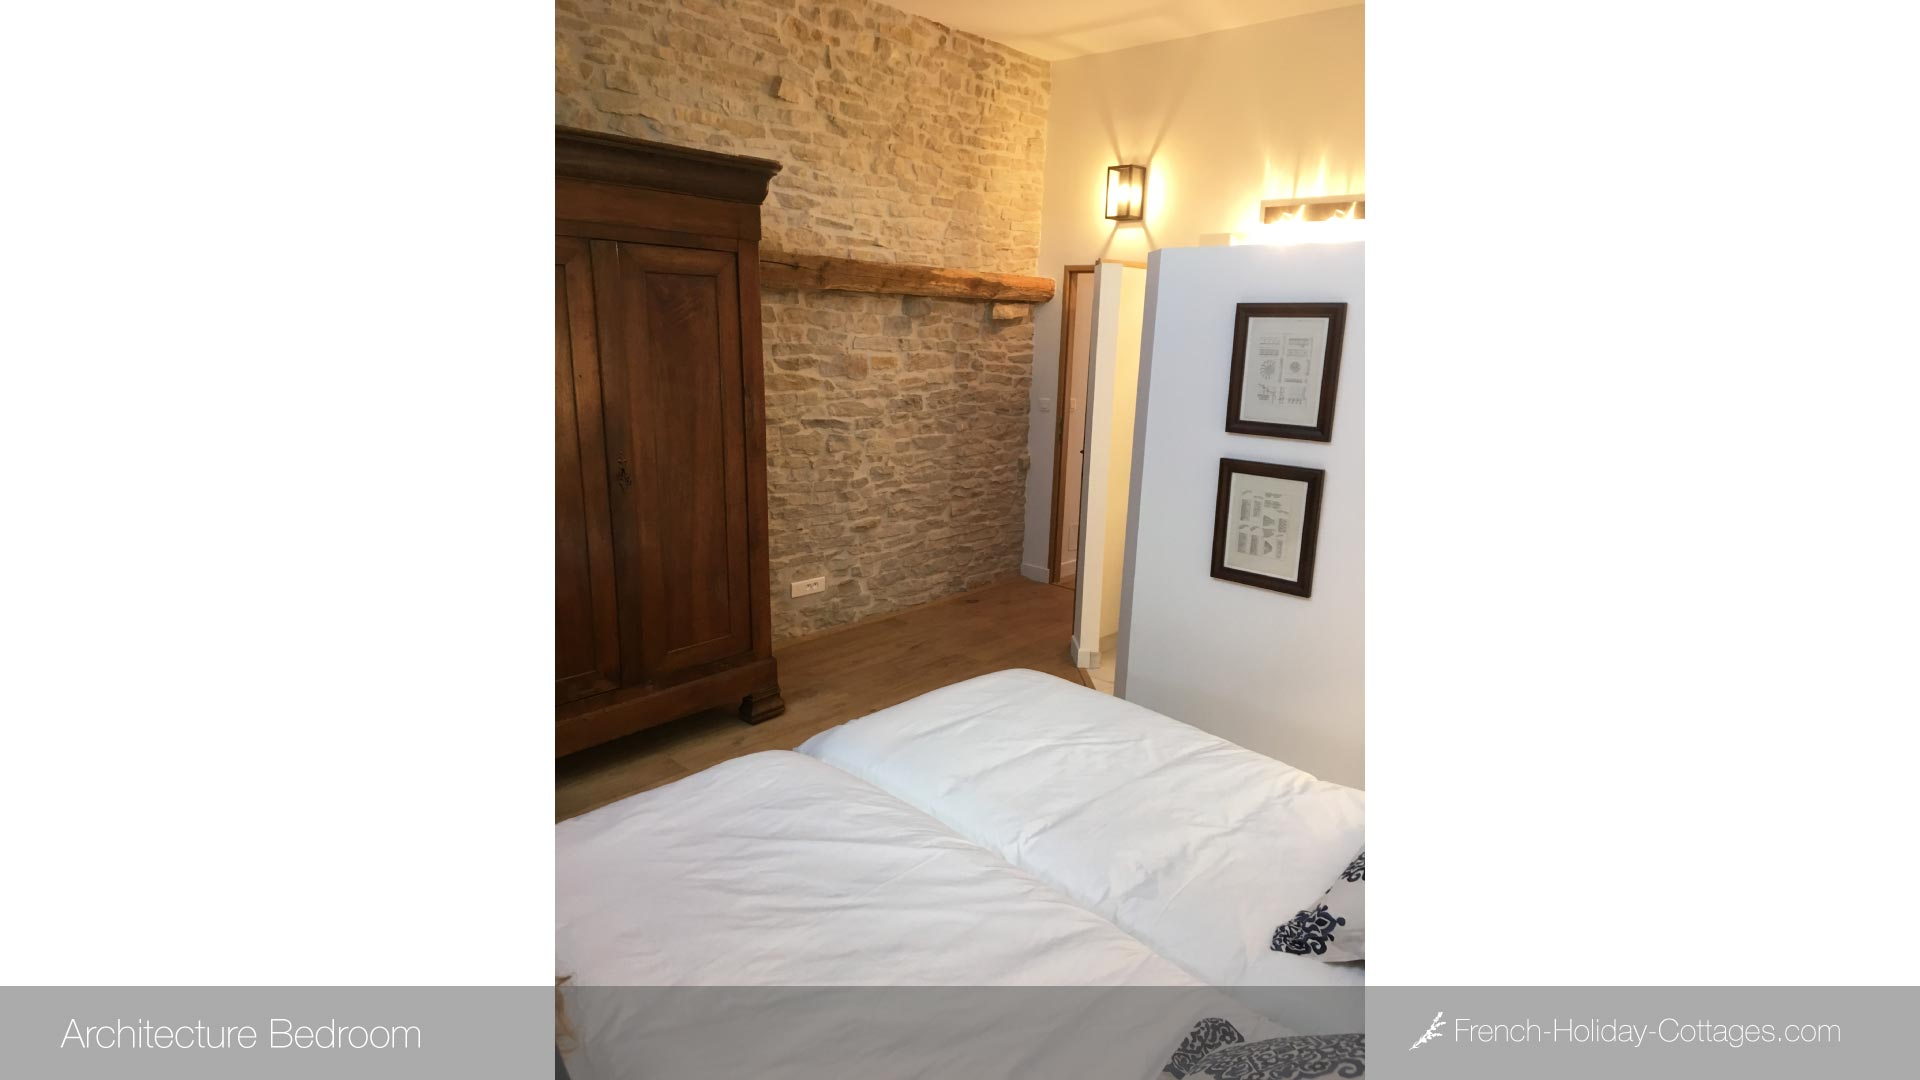 2.2-french-holiday-cottage-bedroom-1 - french-holiday-cottages.com